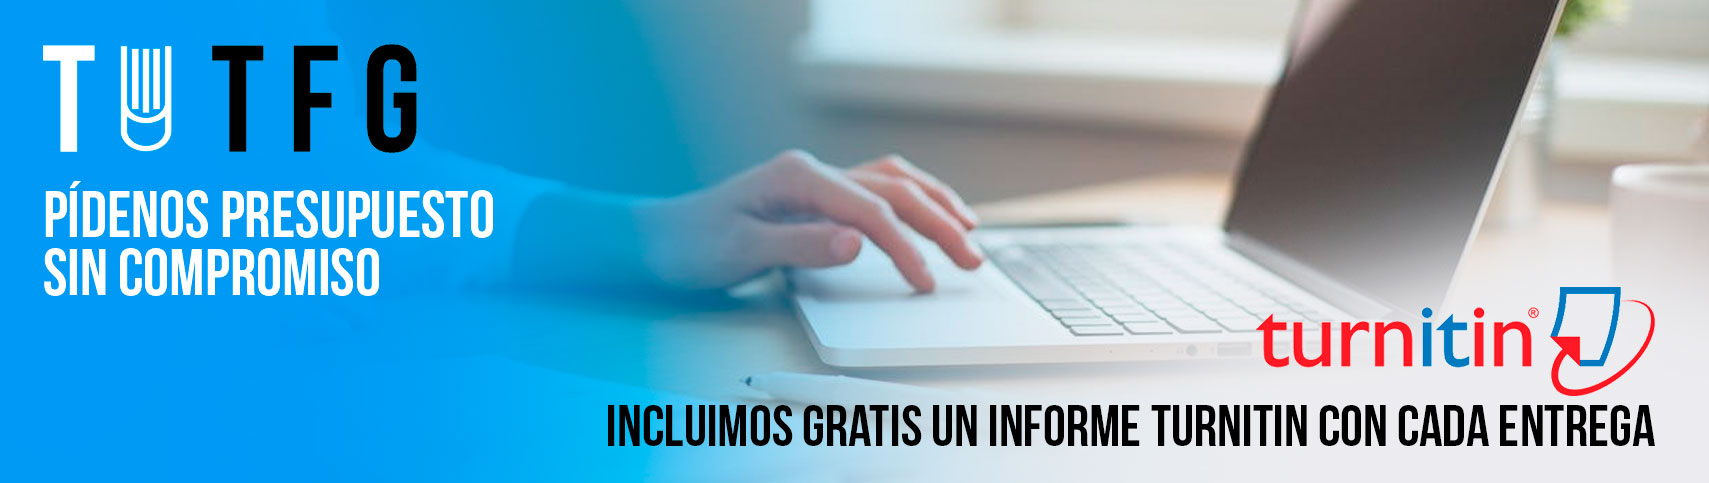 informe-turnitin-tutfg